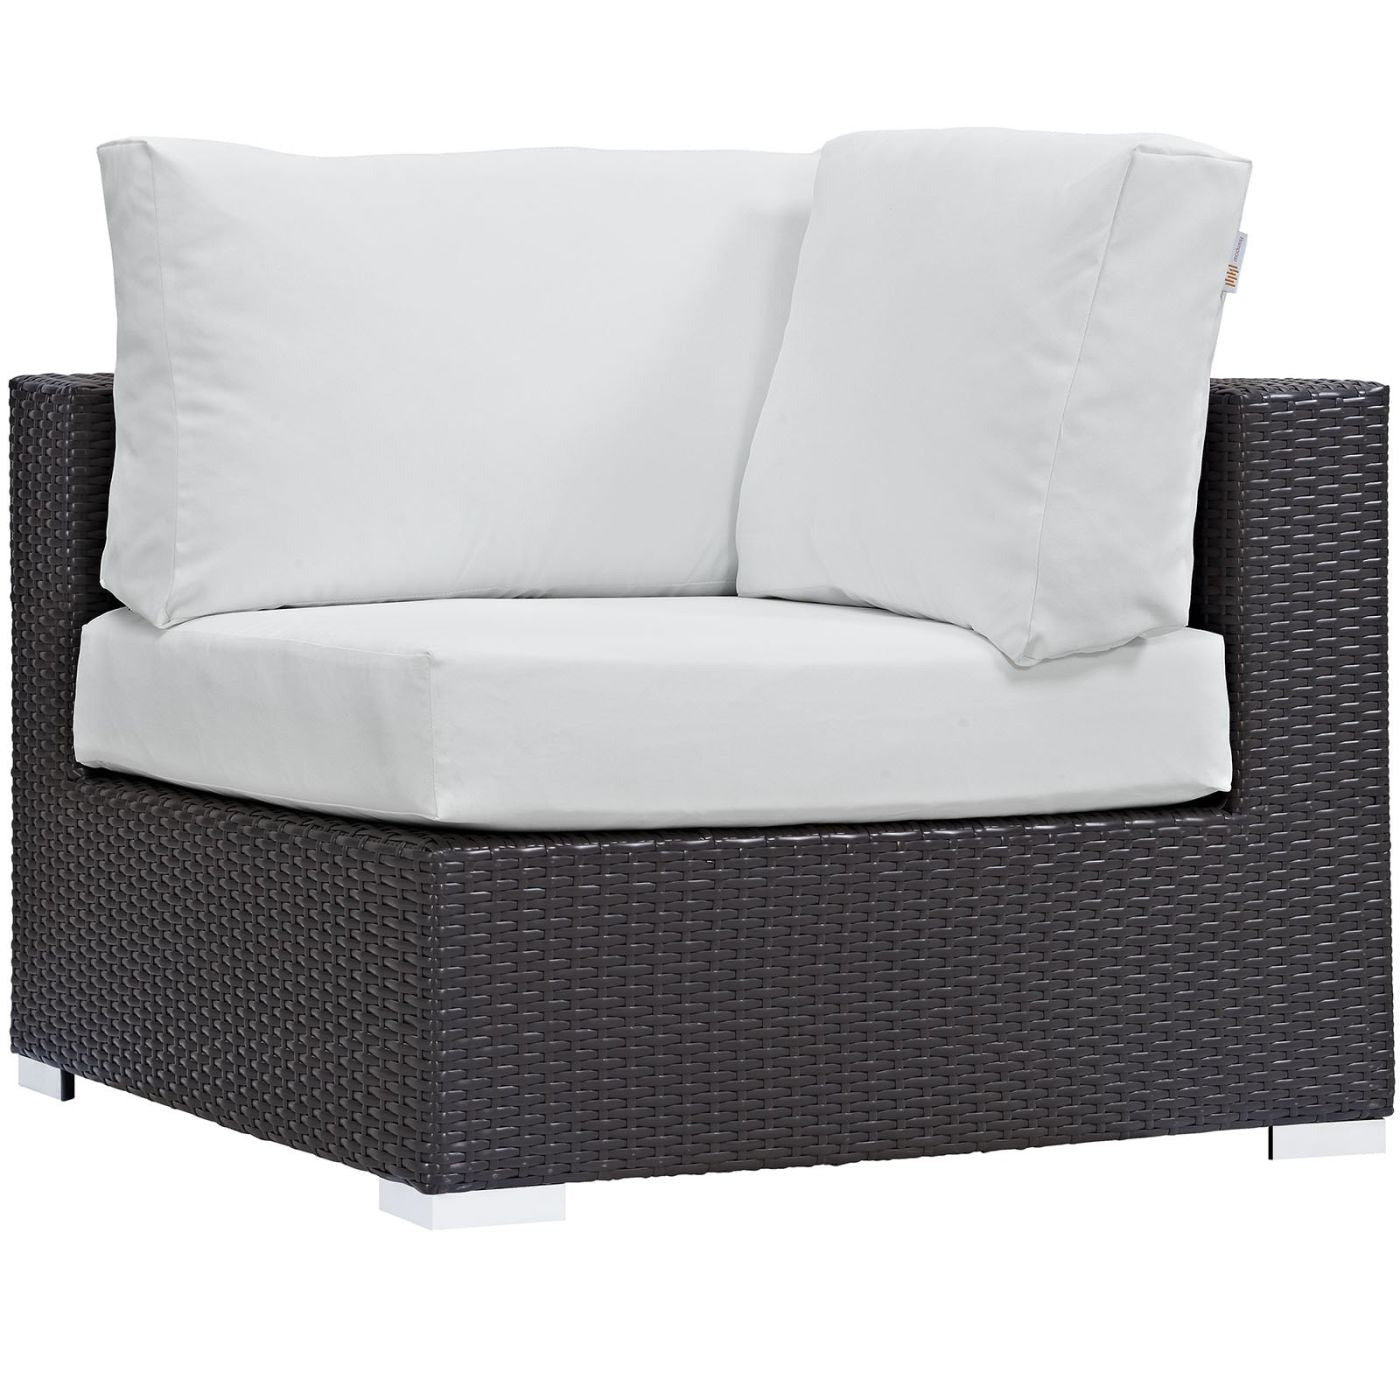 Modway Convene Rattan Outdoor Patio Corner Chair at ...